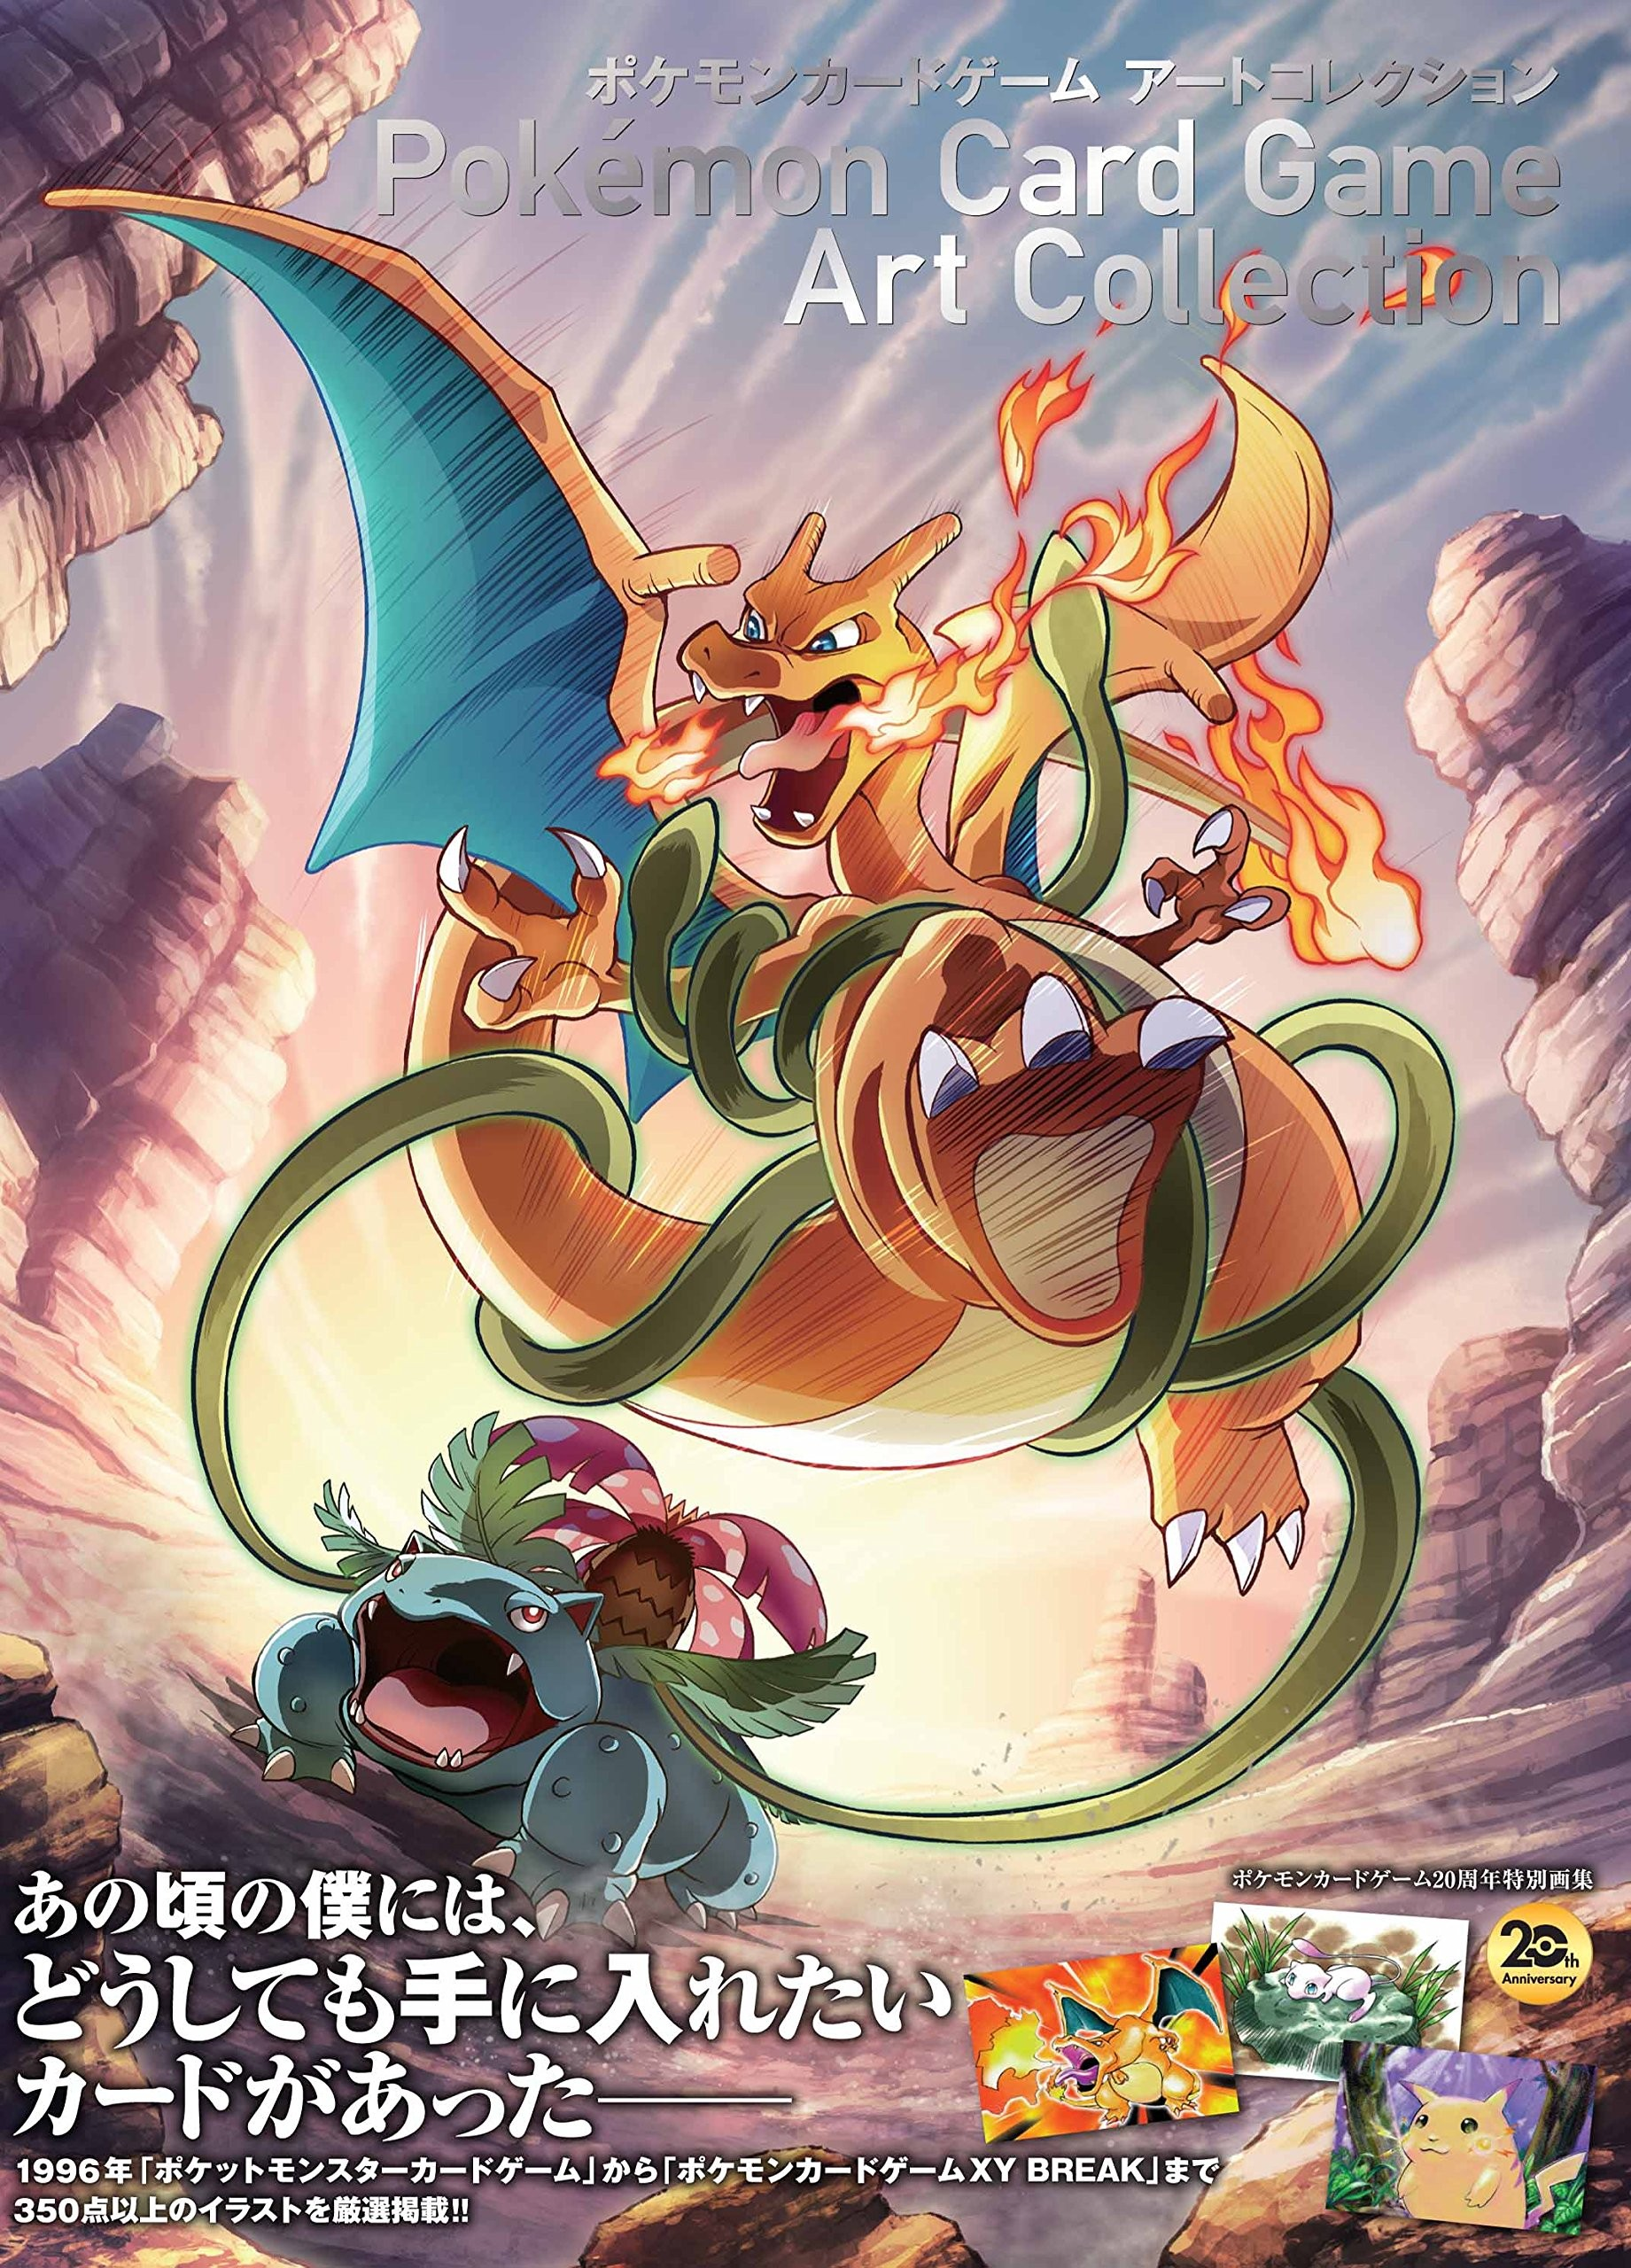 Pokémon Card Game Art Collection - Japanese Import